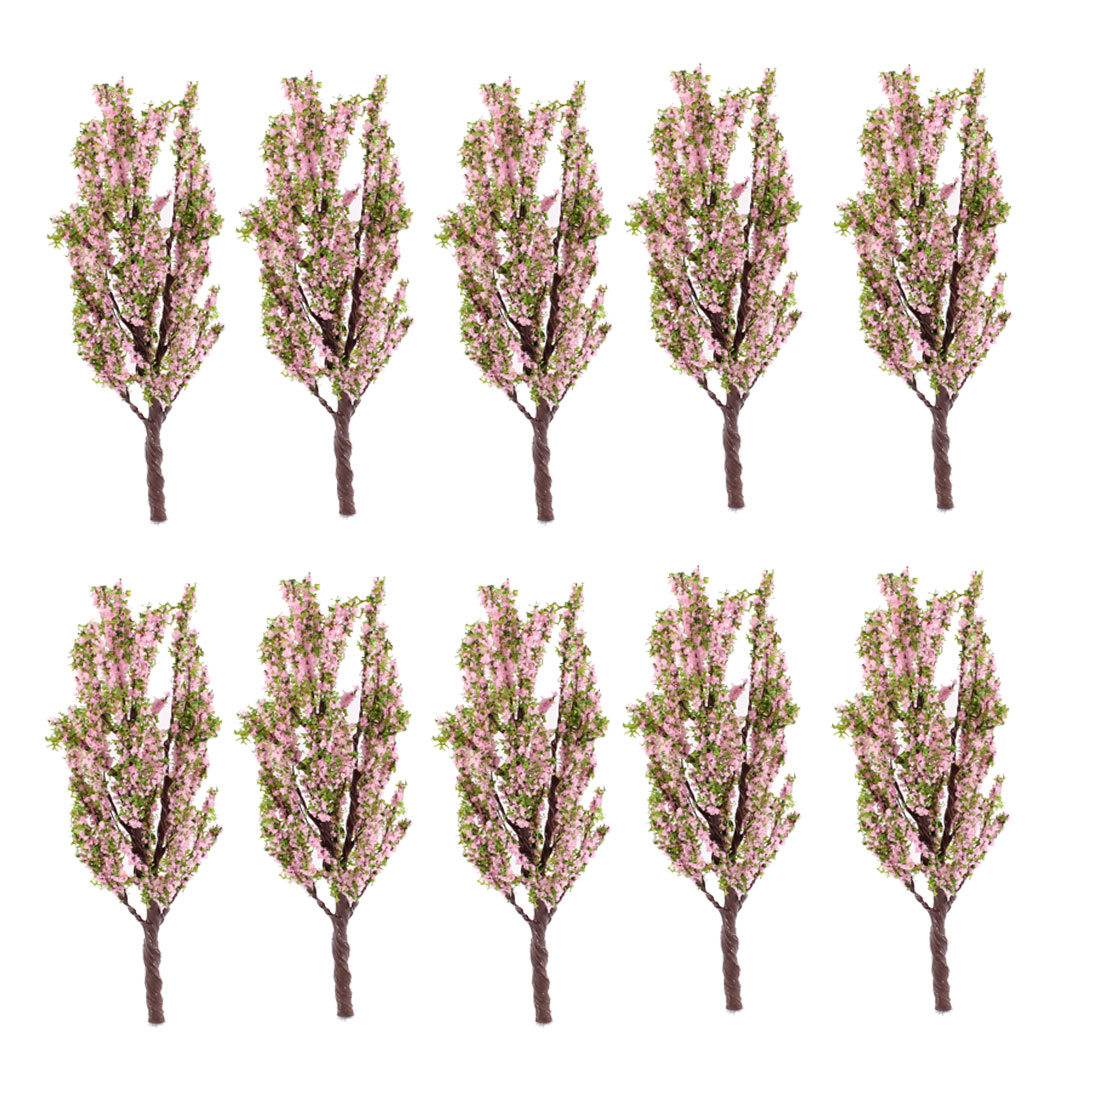 10Pcs Artificial Plastic Green Pink Leaves Tree 12cm High 1:100